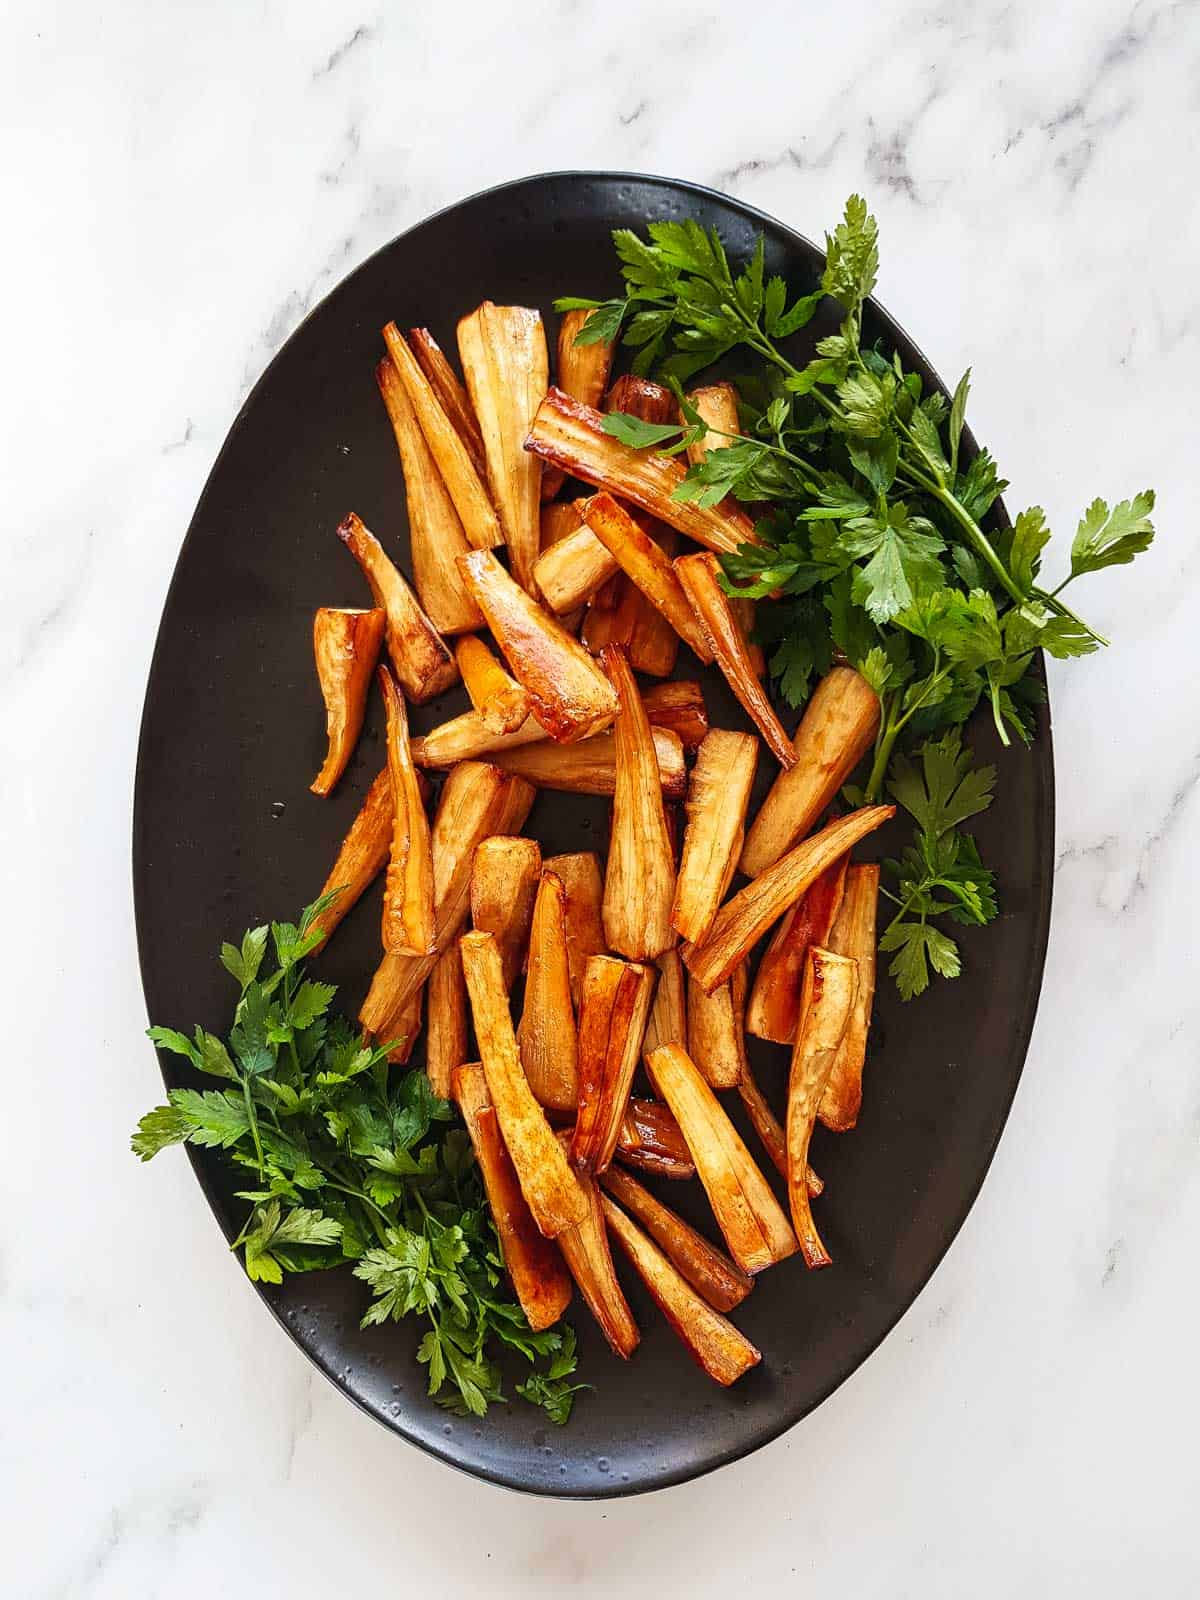 Honey roast parsnips on a serving platter with fresh parsley garnish.